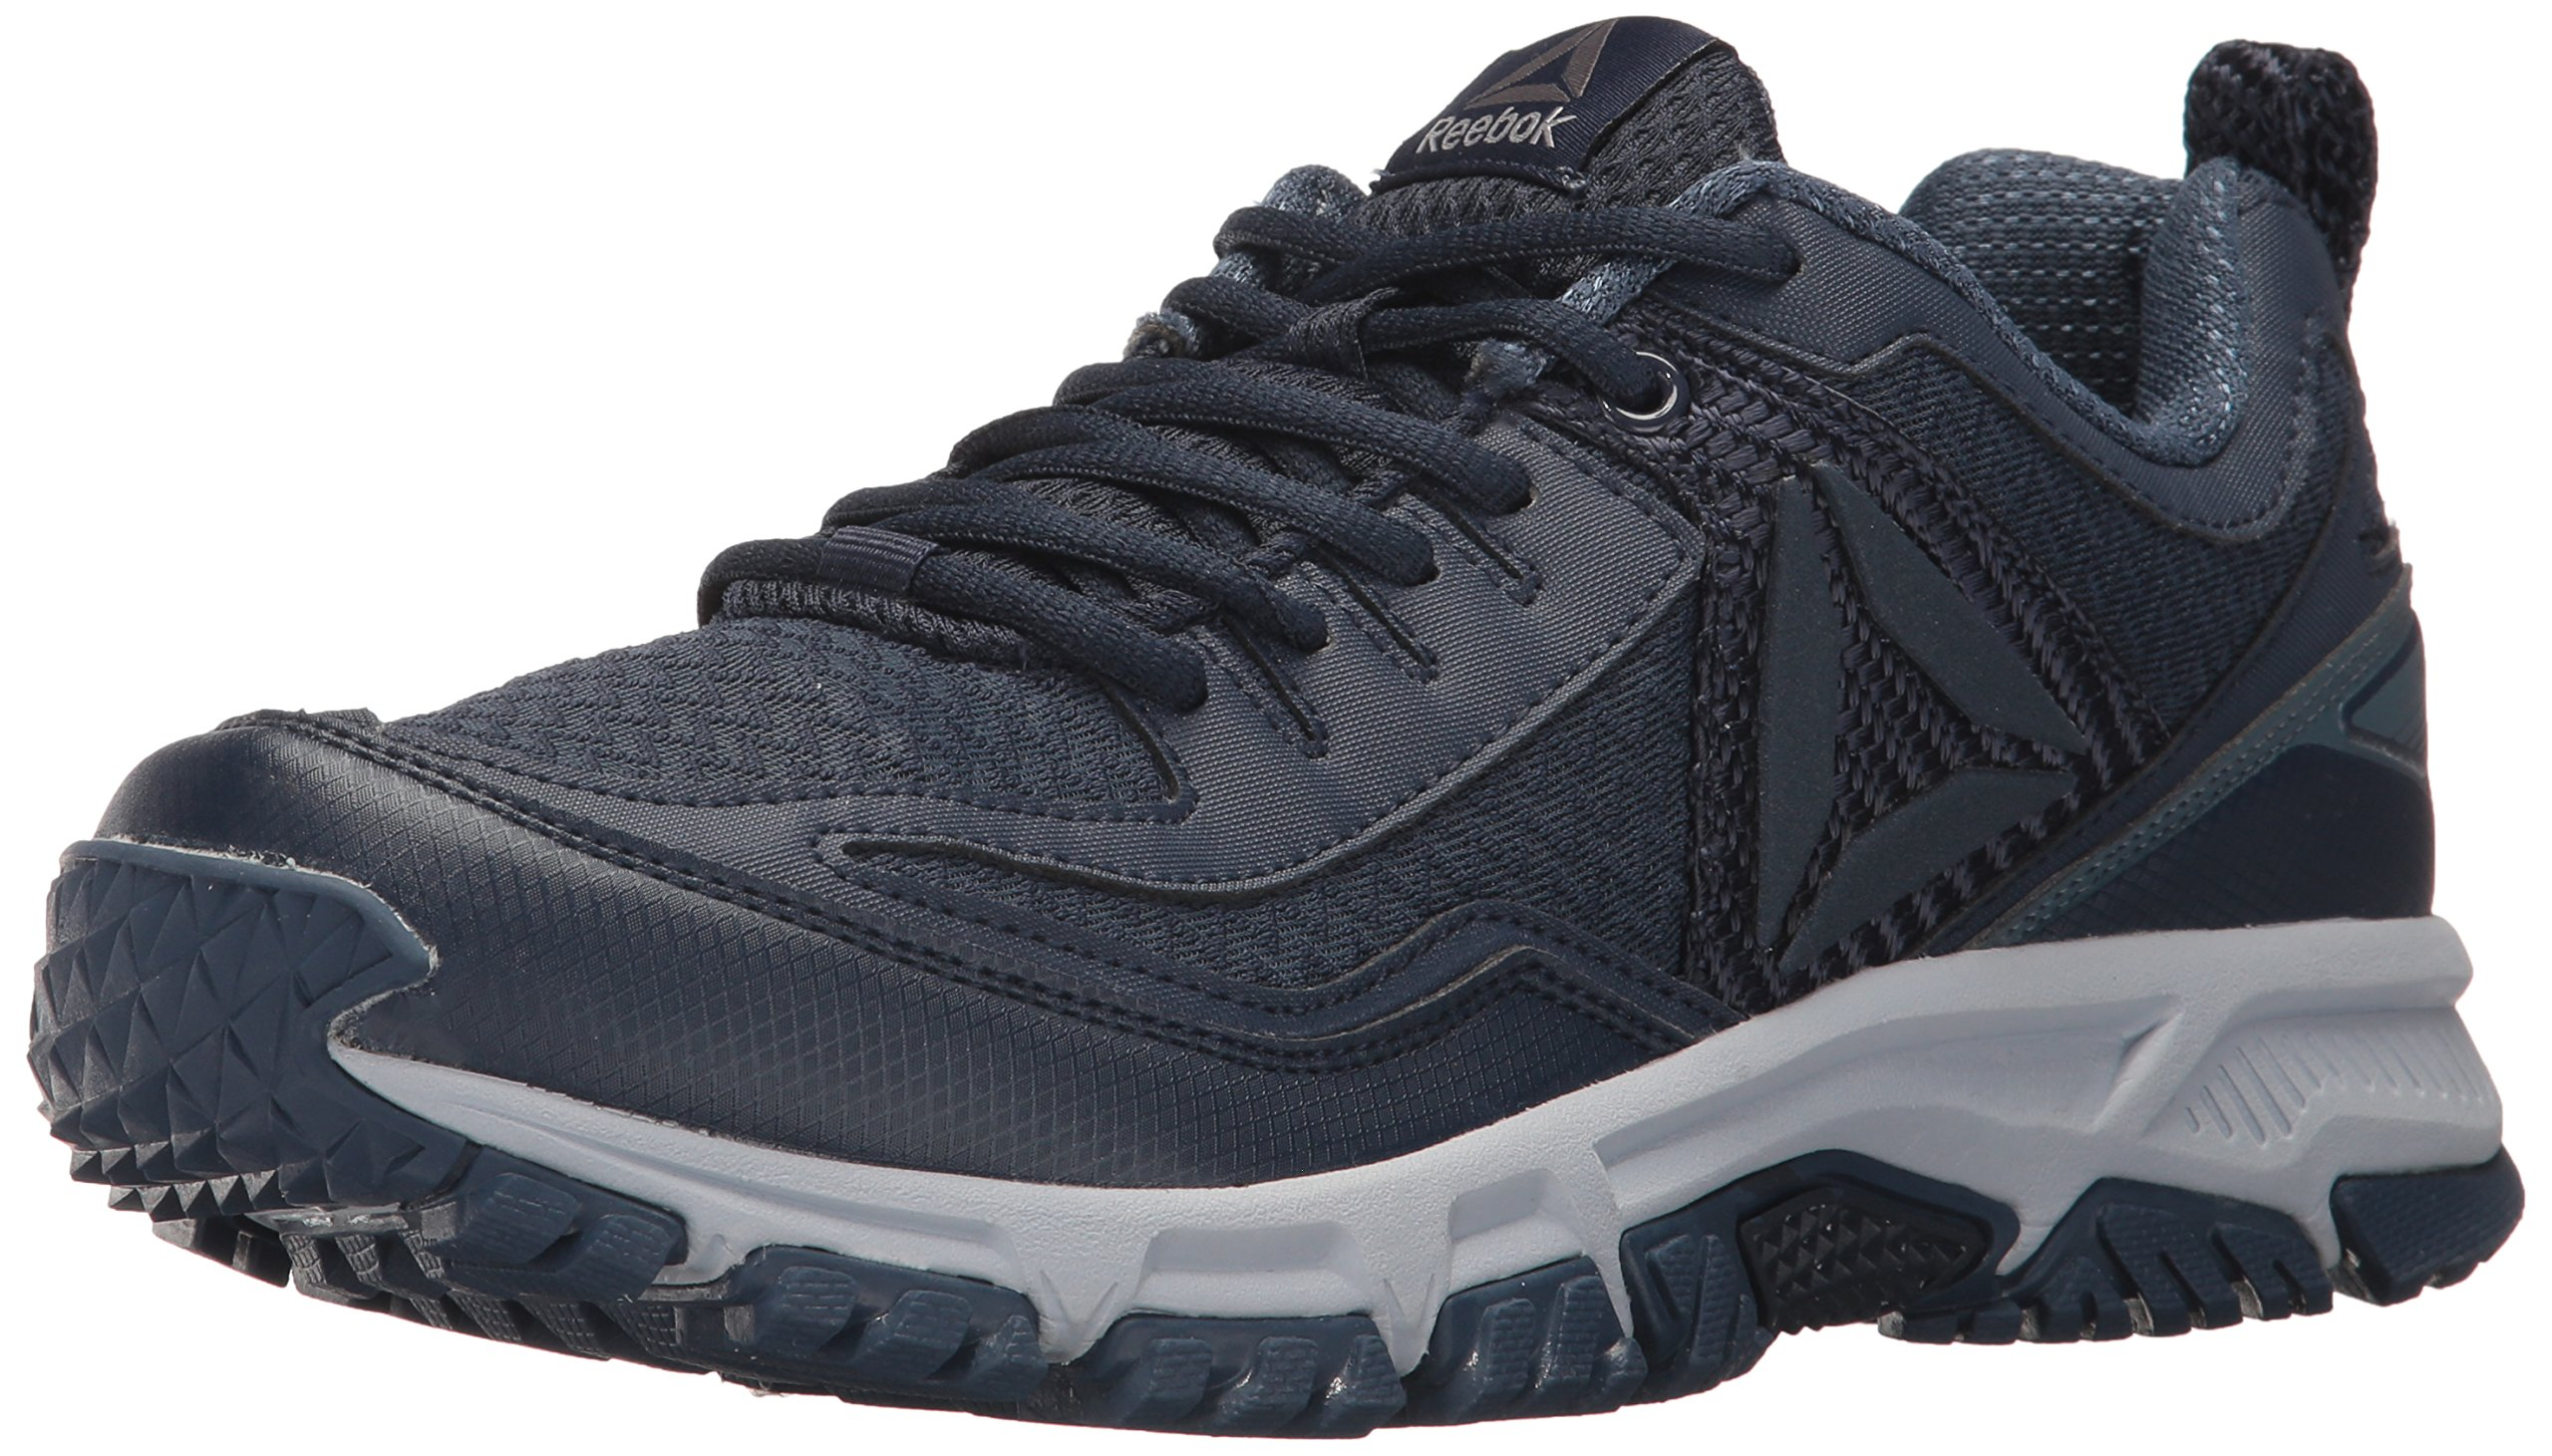 Reebok Men's Ridgerider 2.0 Trail Runner, Coll. Navy/Smoky Indigo/Meteor/Black/Silver/Pewter, 10 M US